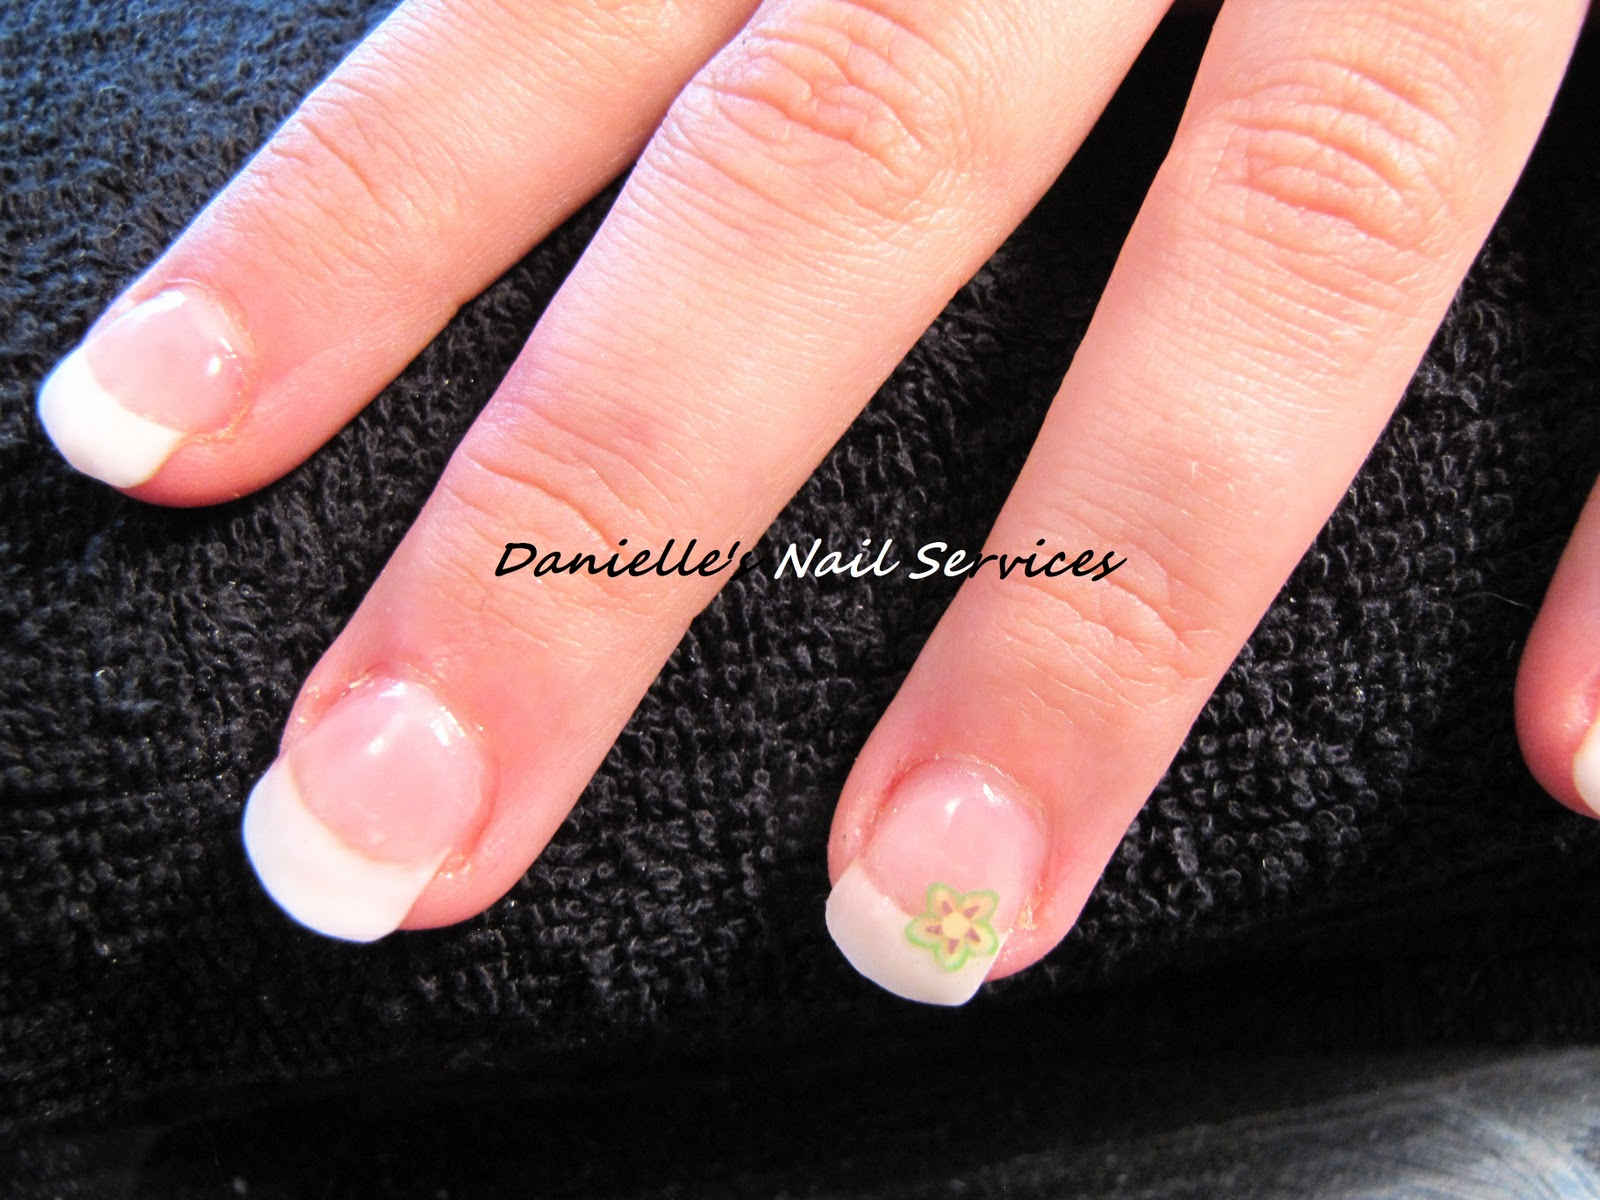 Danielle's Nail Services: September 2011 Nails - Beginning ...